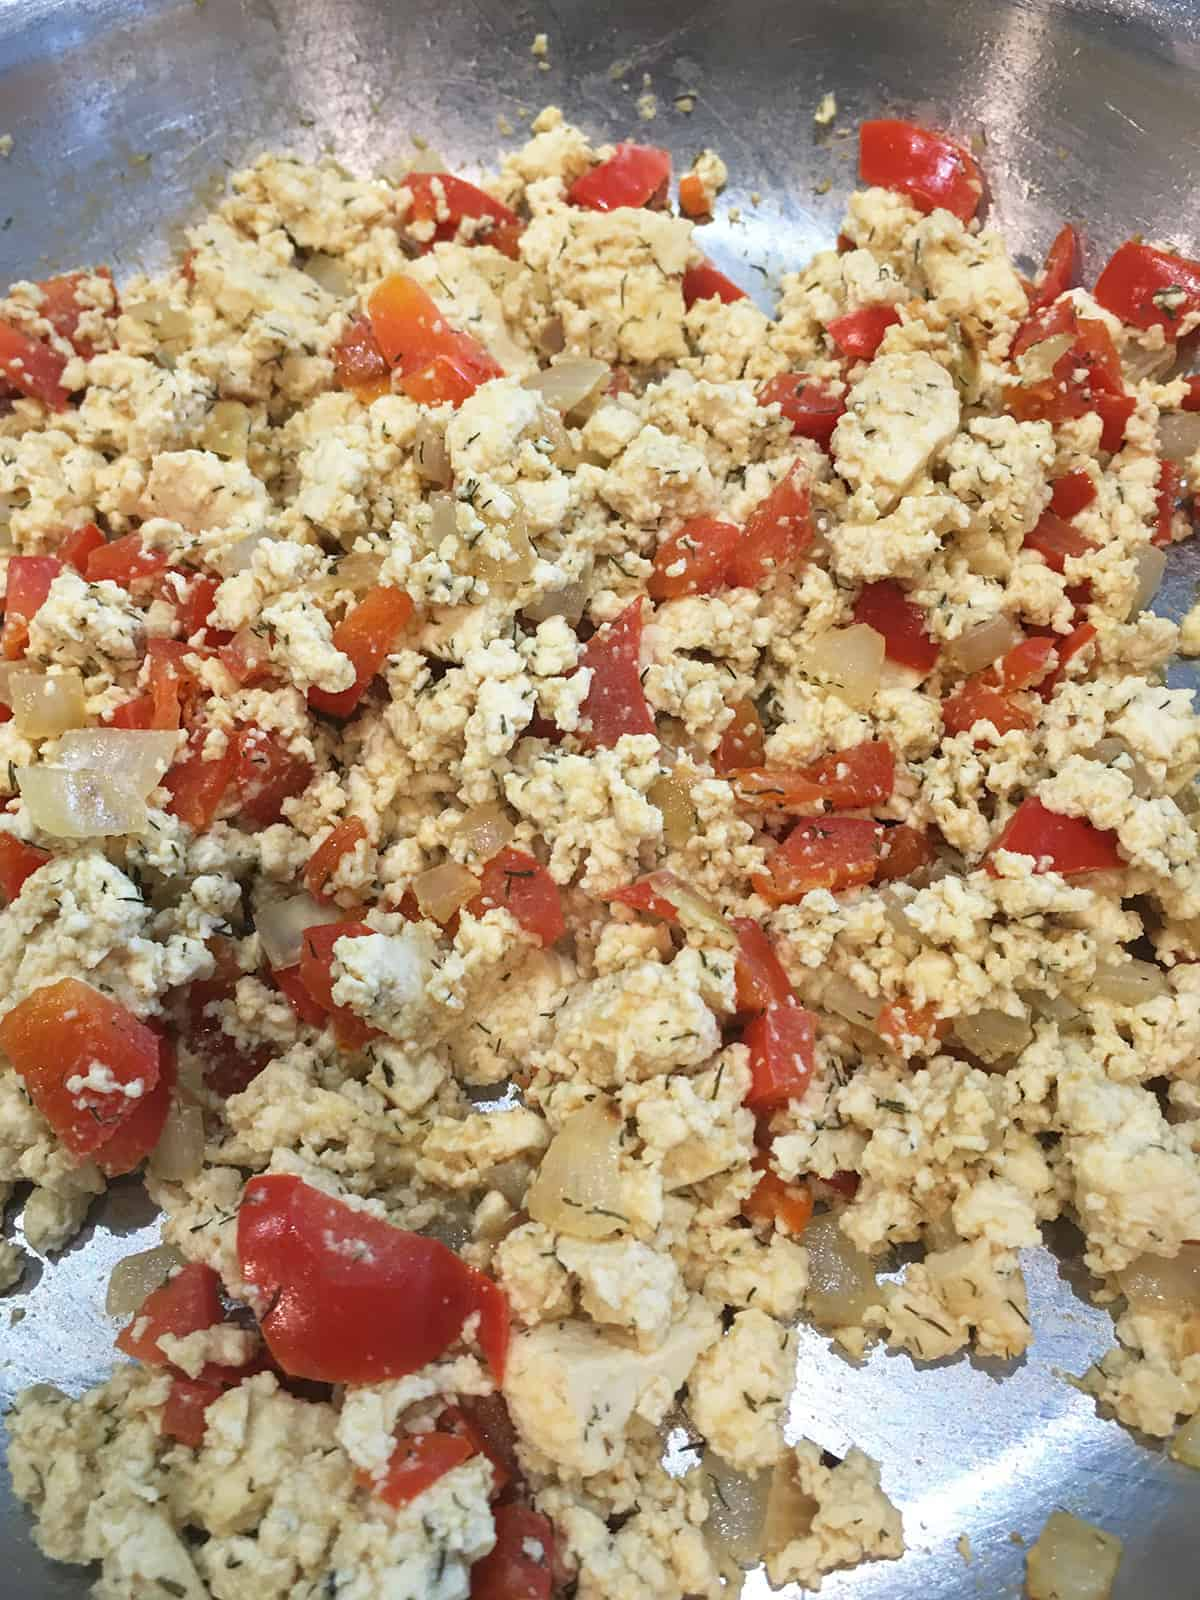 Close up of cooked tofu scramble with red pepper and onions in a stainless steel pan